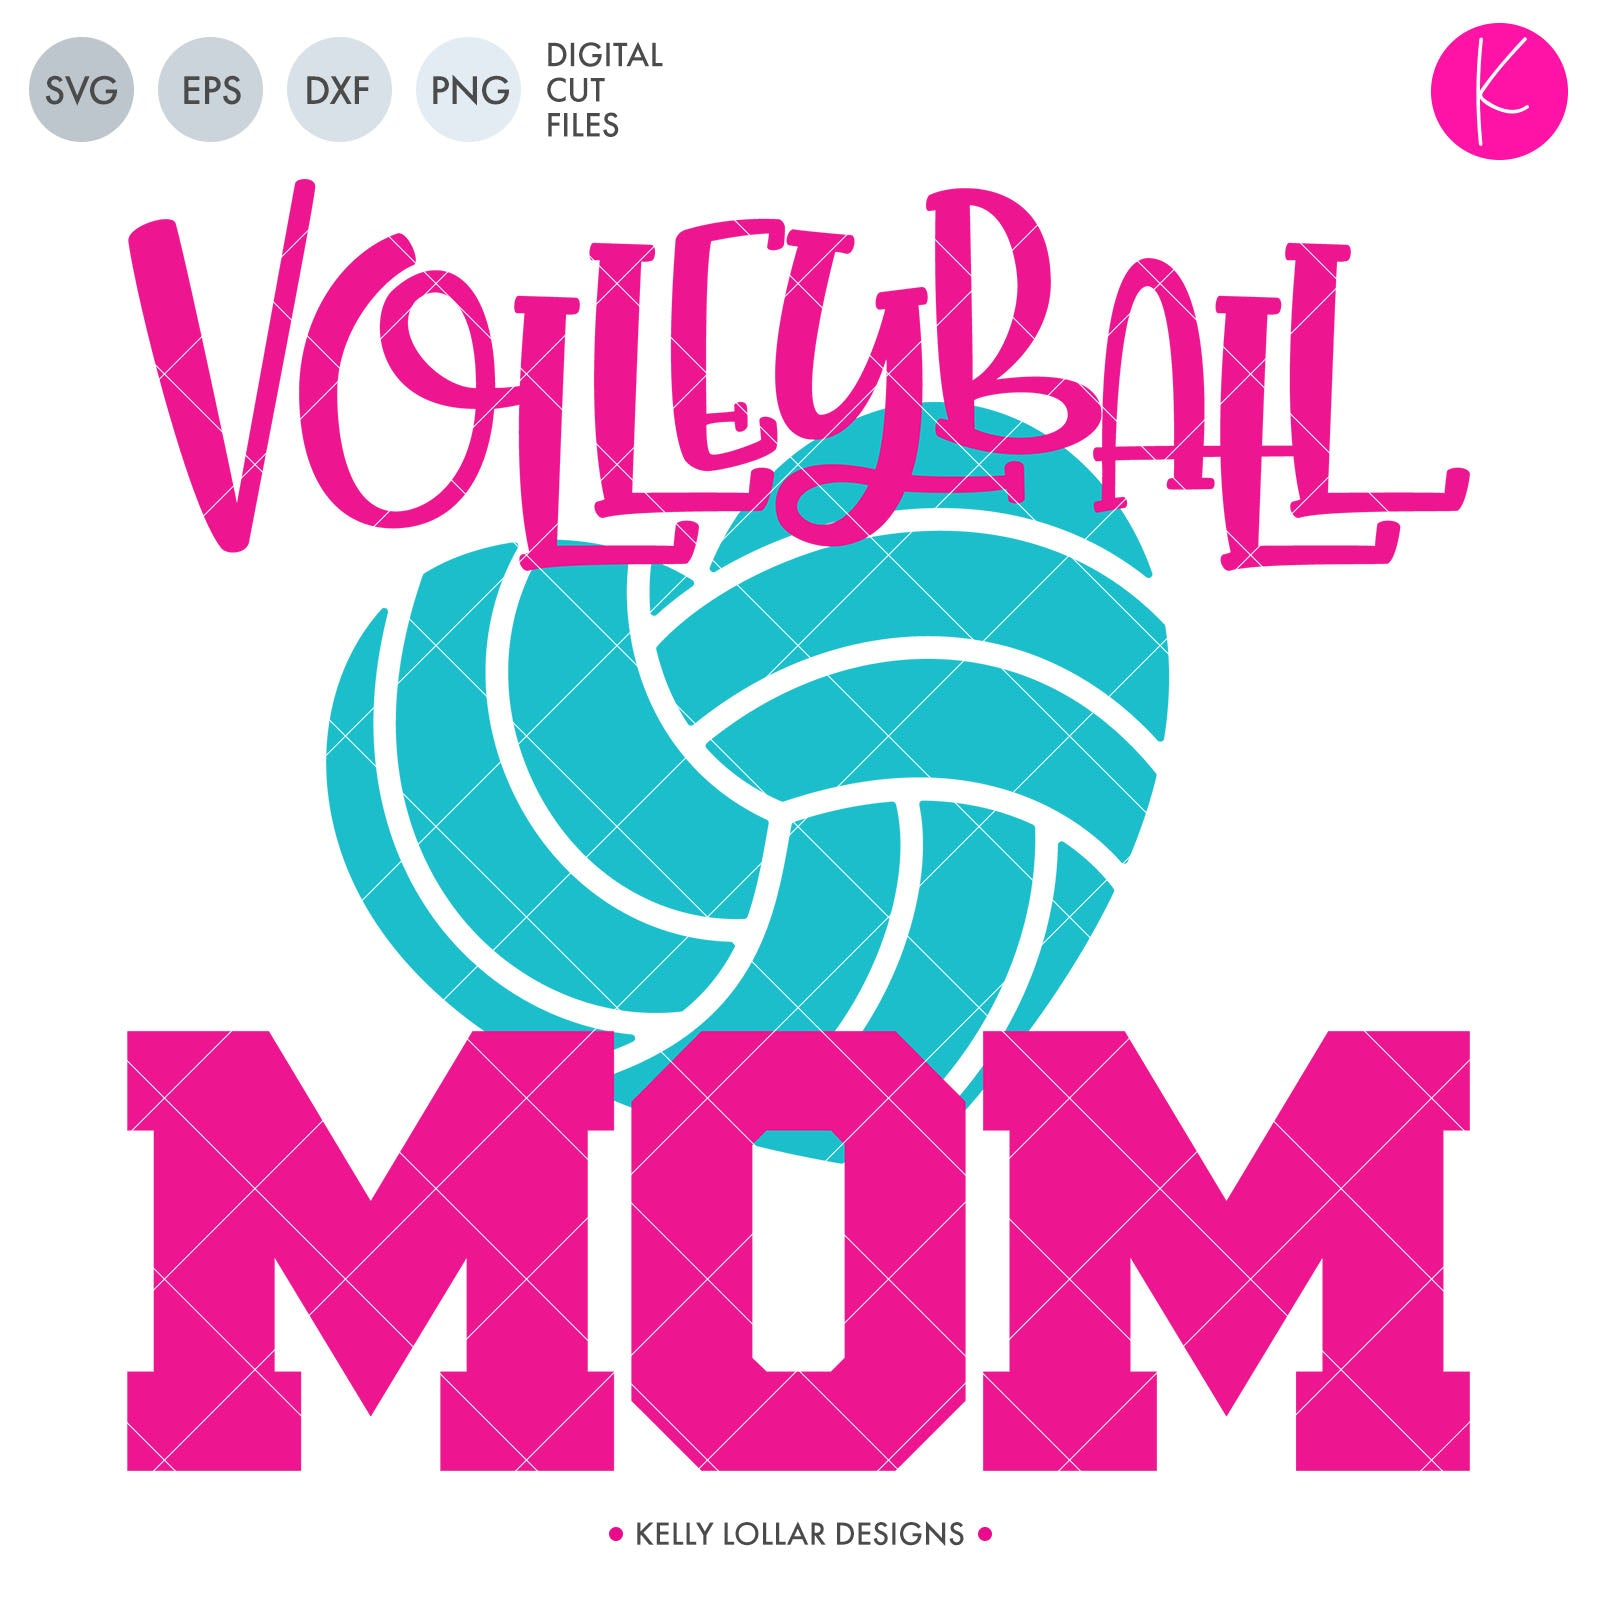 Volleyball Mom SVG Cut File Volleyball Mom Quote with Heart Shaped Volleyball | SVG DXF PNG Cut Files 1 file for each format each piece welded separately to save space while cutting volleyball heart can